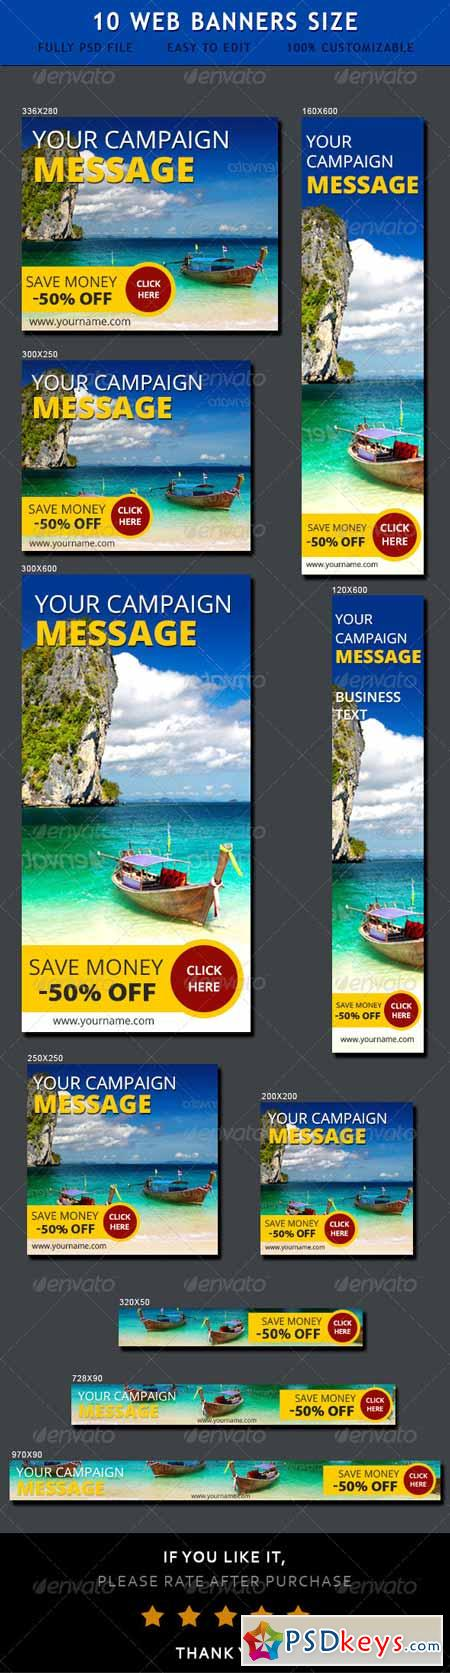 Travel Web Ad Banners 6928862